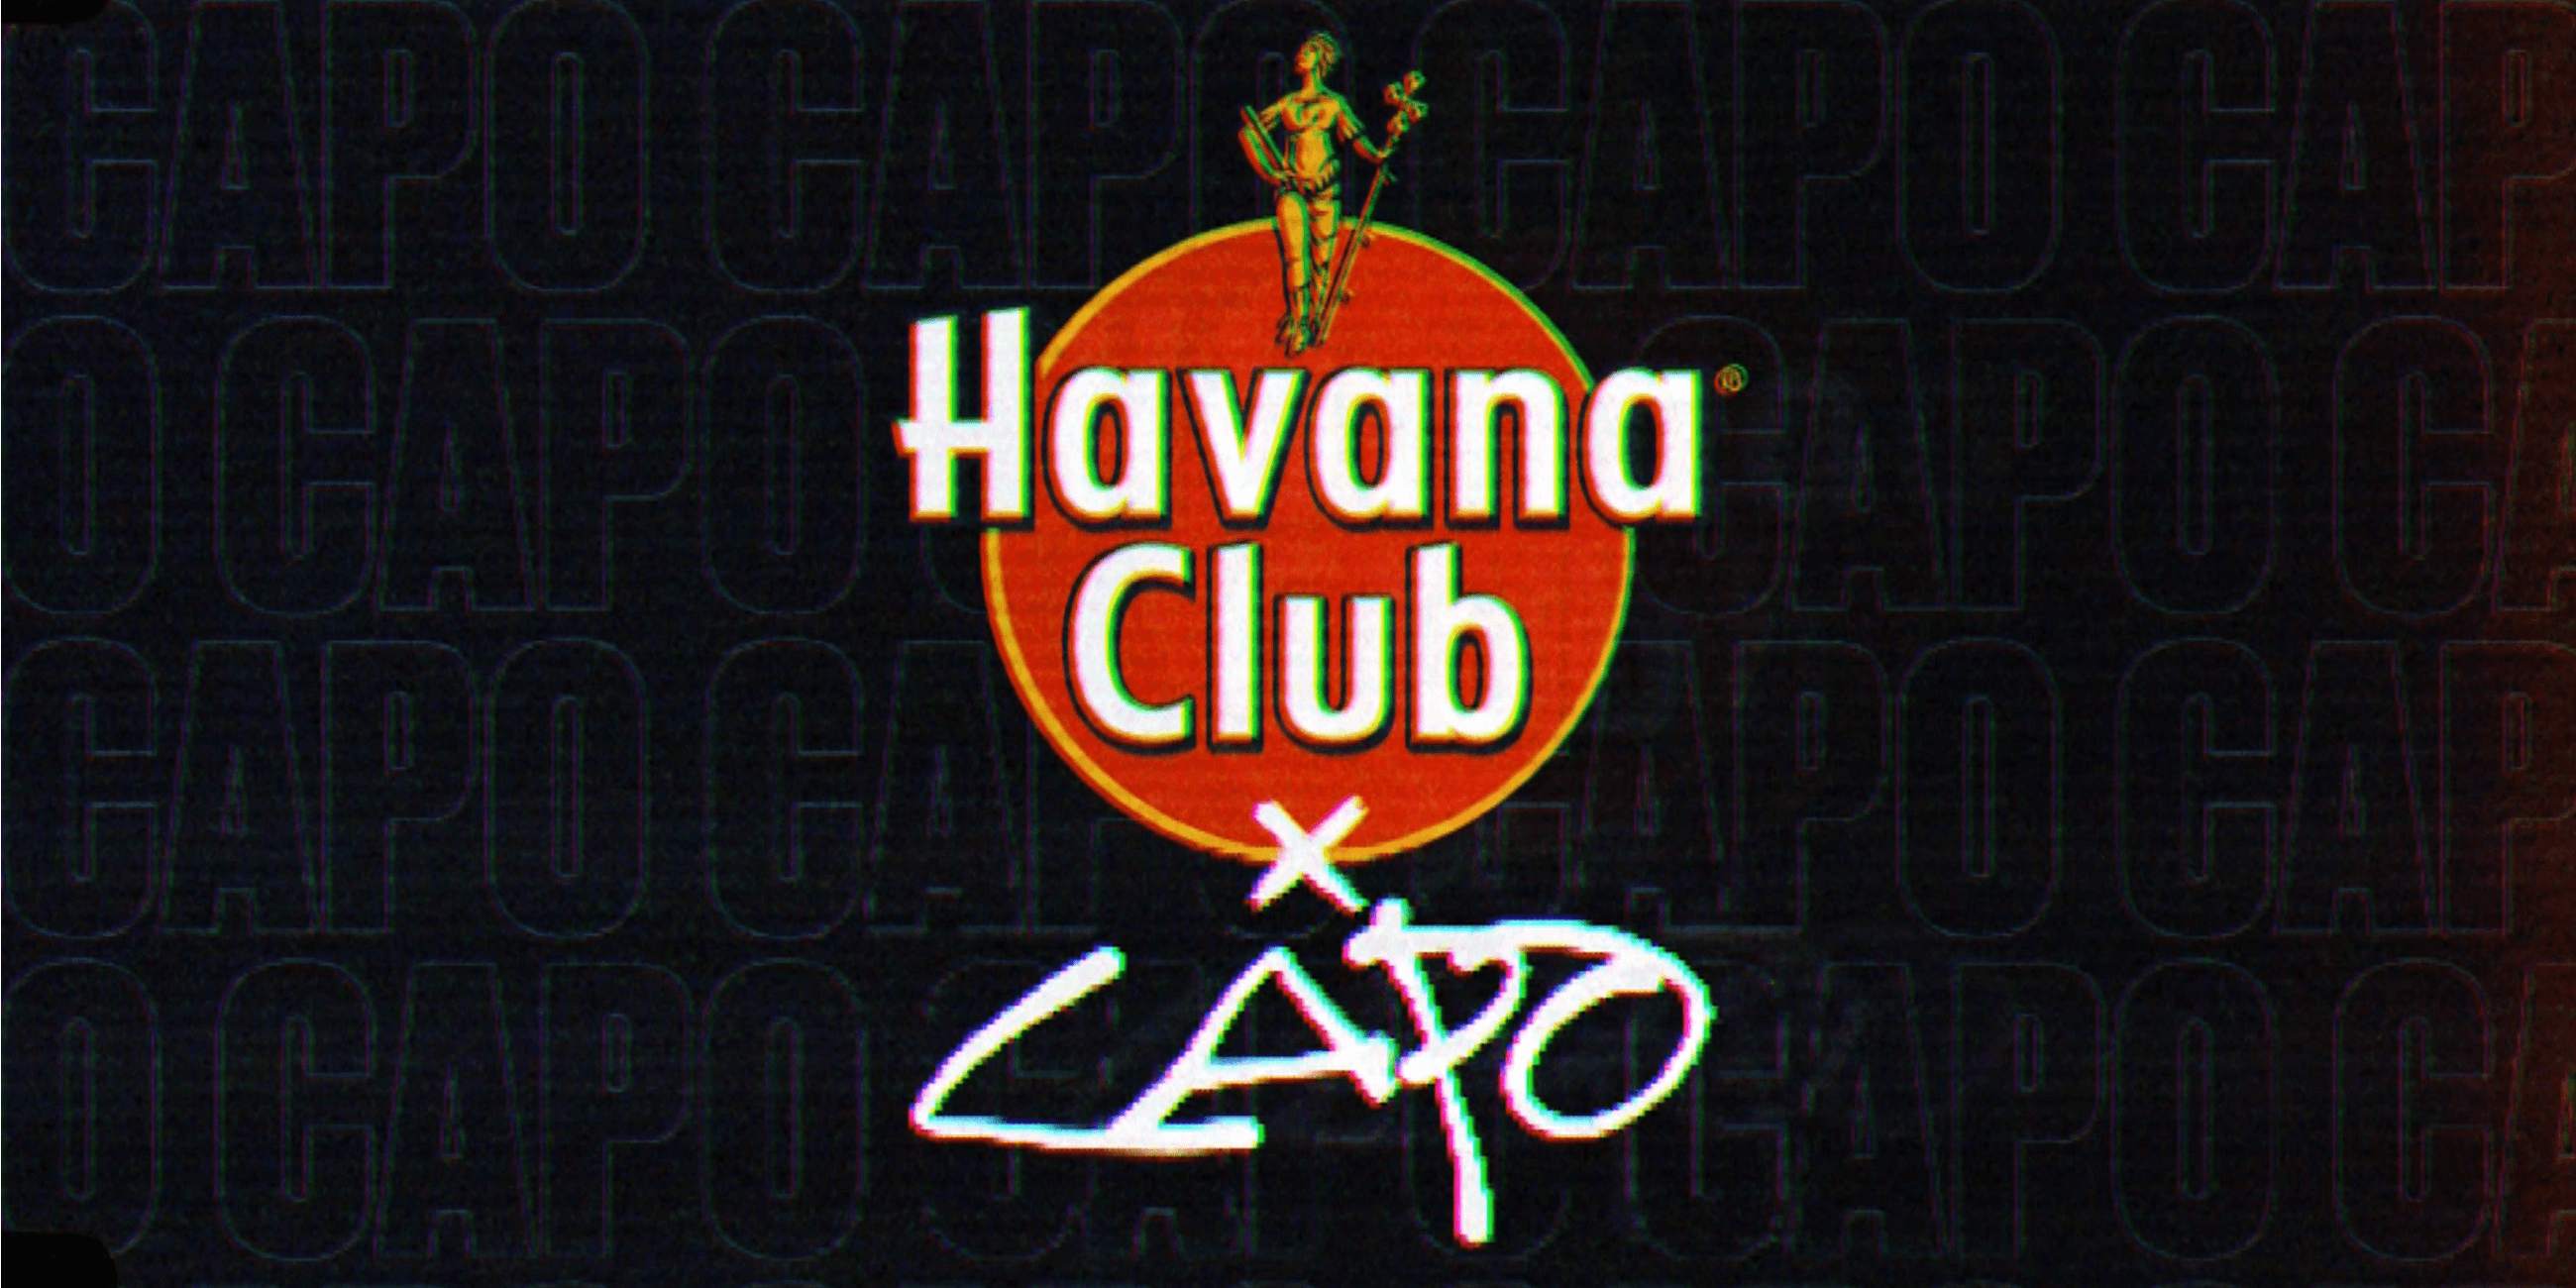 Capo Statement zu Havana Club Kooperation